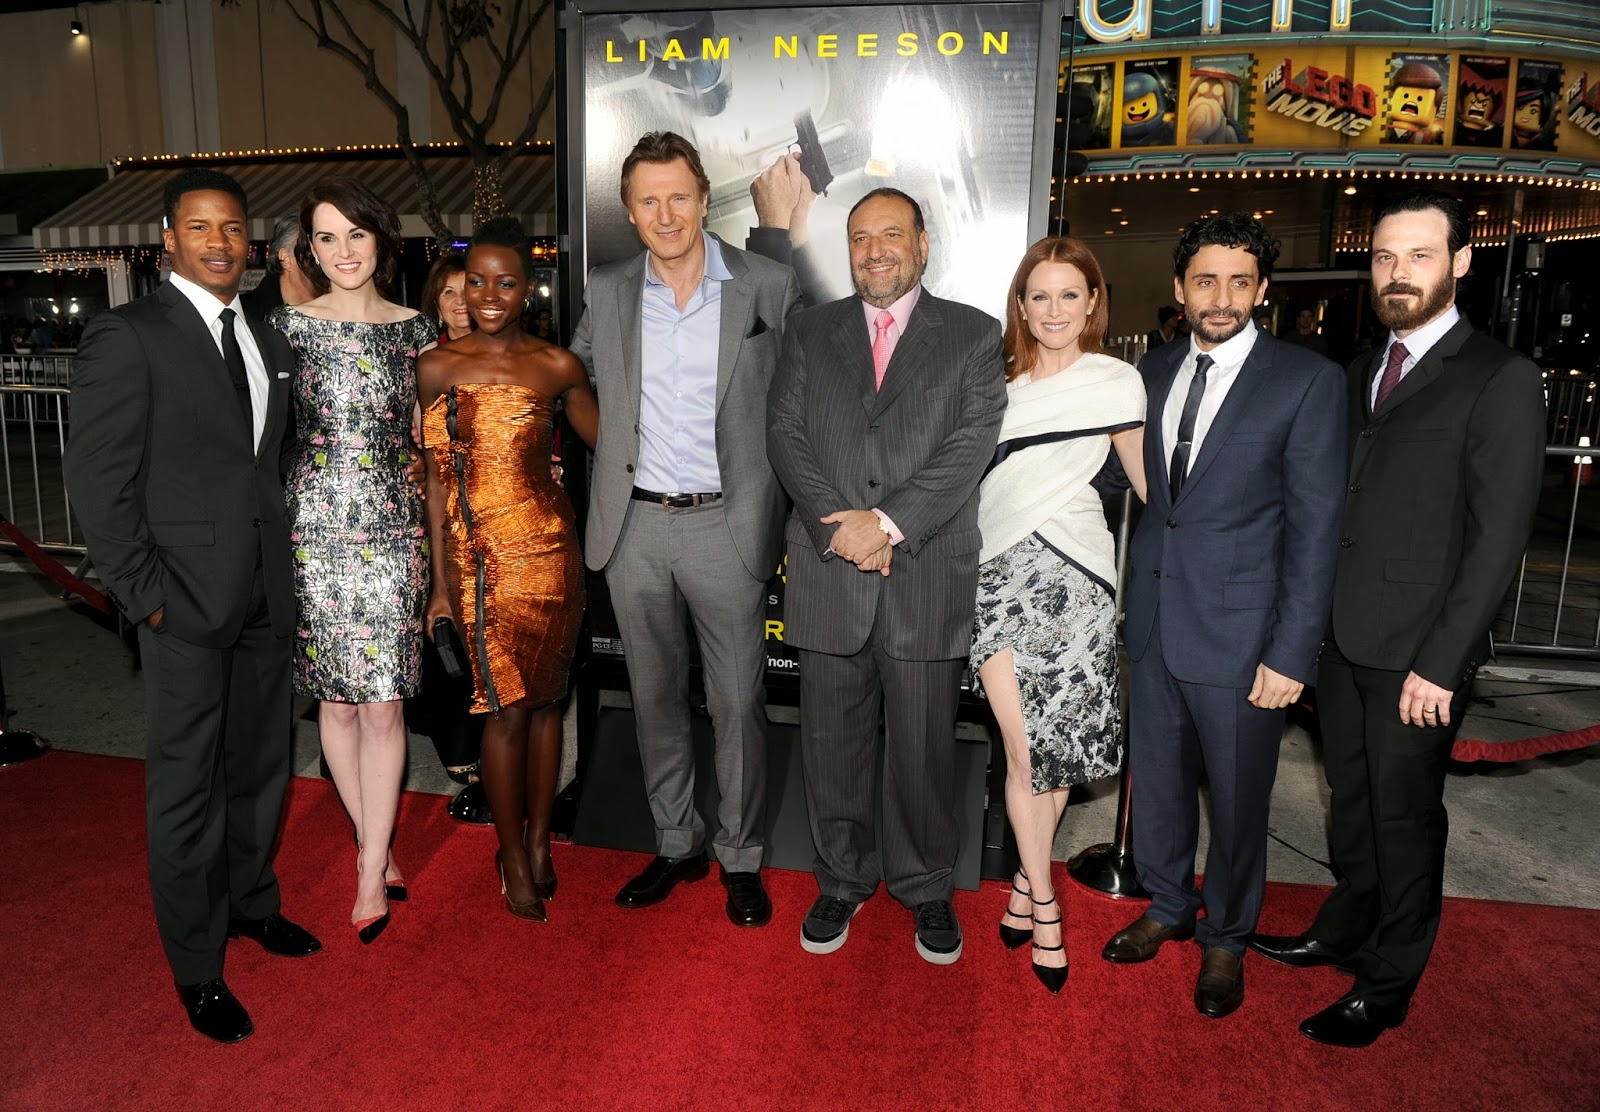 Non-Stop world Premiere with Michelle Dockery, Liam Neeson, Julianne Moore: HD Pictures